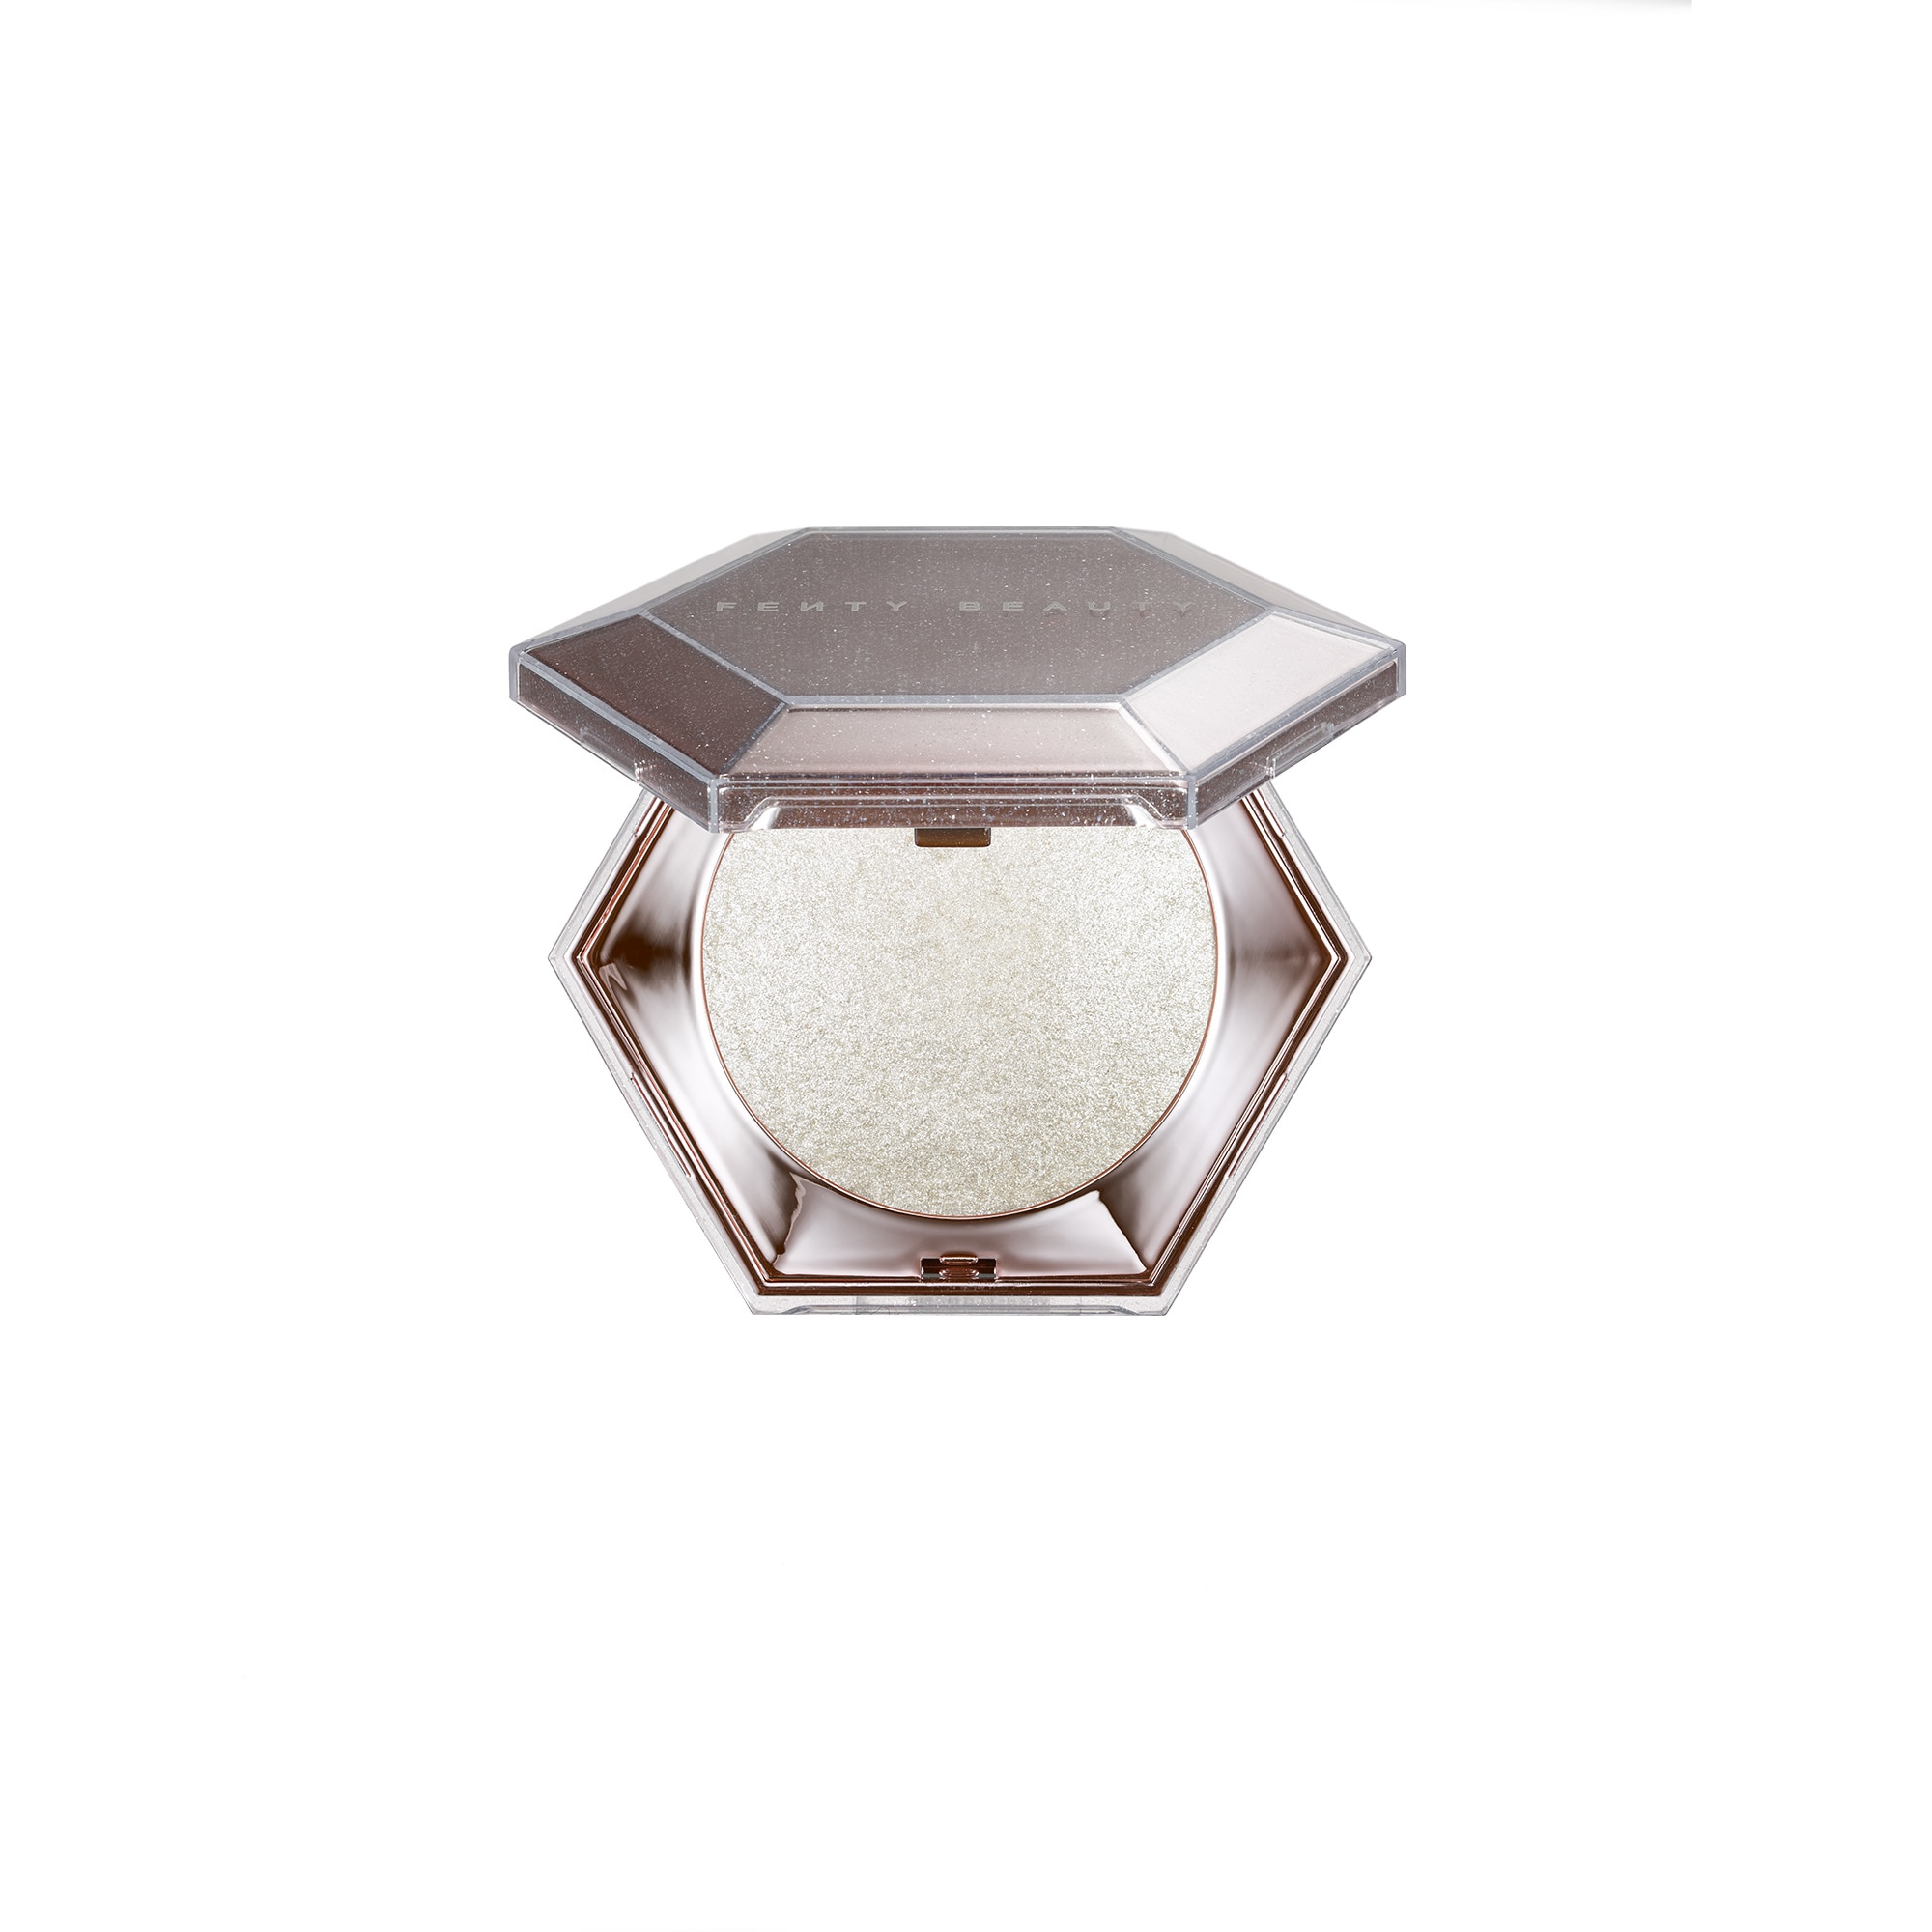 FENTY BEAUTY DIAMOND BOMB ALL-OVER DIAMOND VEIL HOW MANY CARATS?